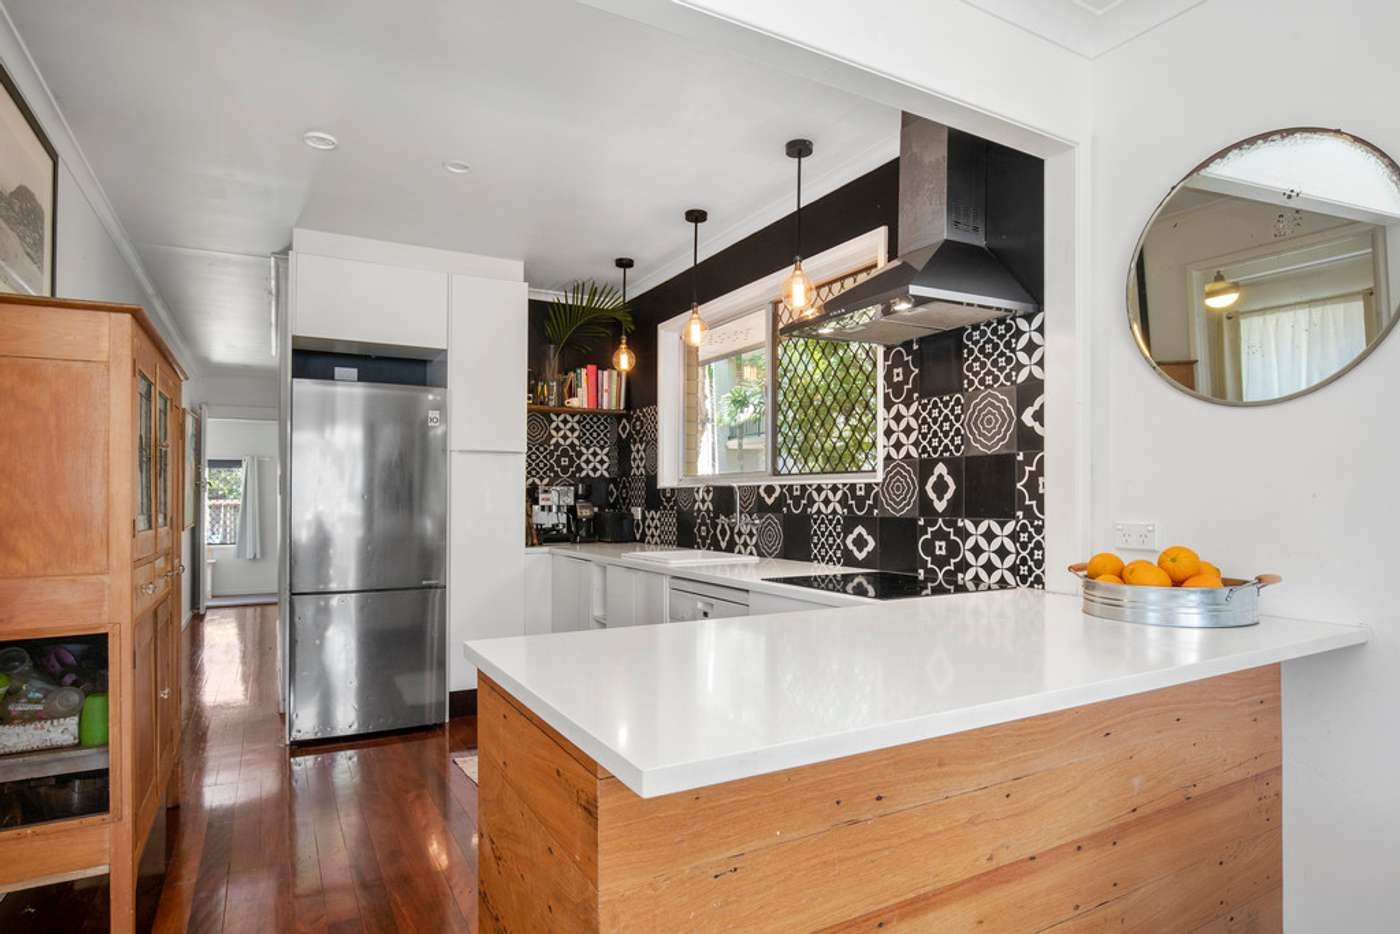 Fifth view of Homely house listing, 12 Markeri Street, Mermaid Beach QLD 4218